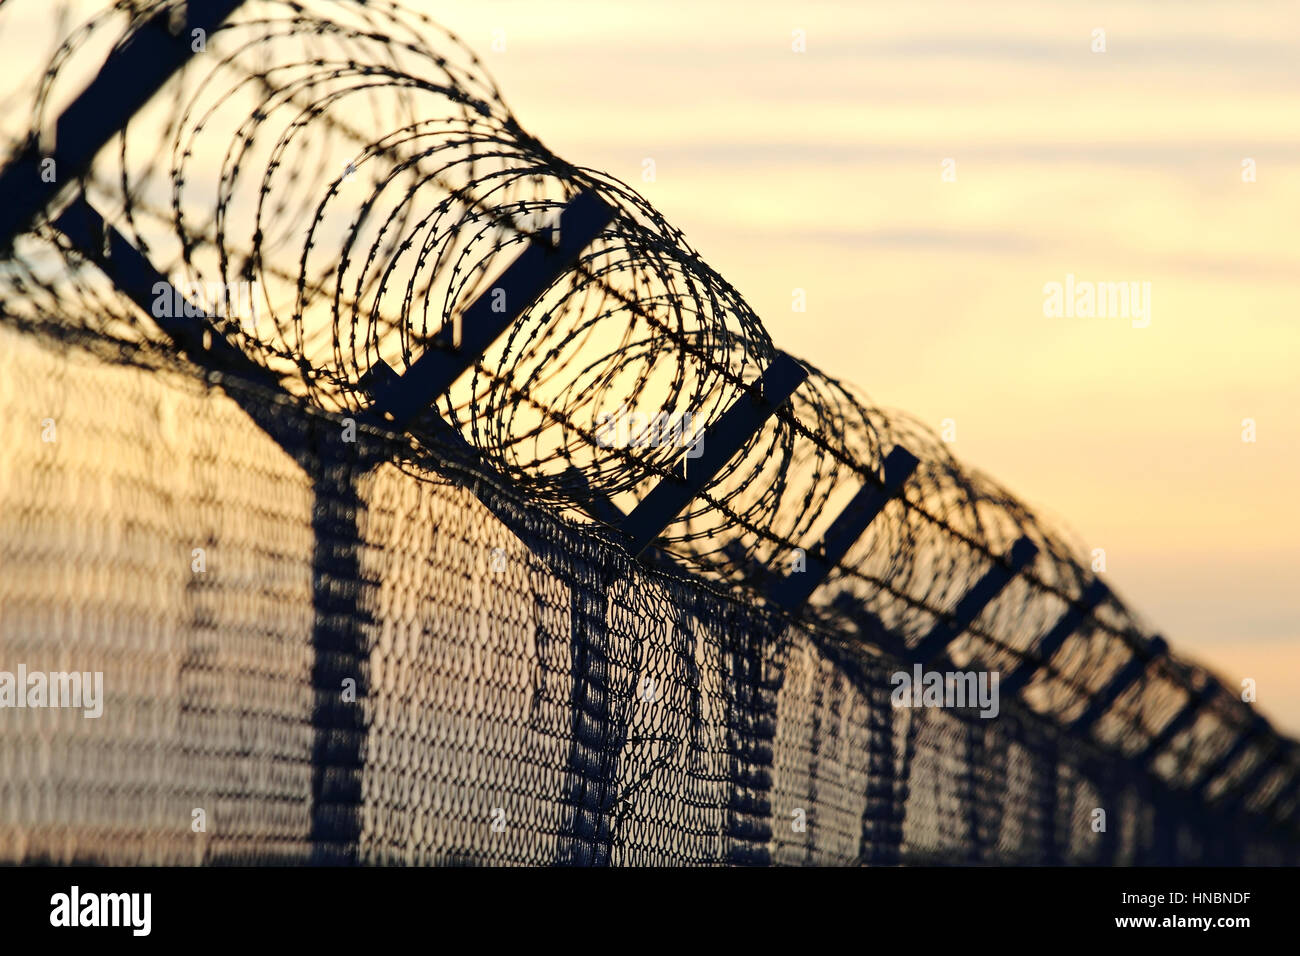 Wall With Barb Wire Stock Photos Amp Wall With Barb Wire